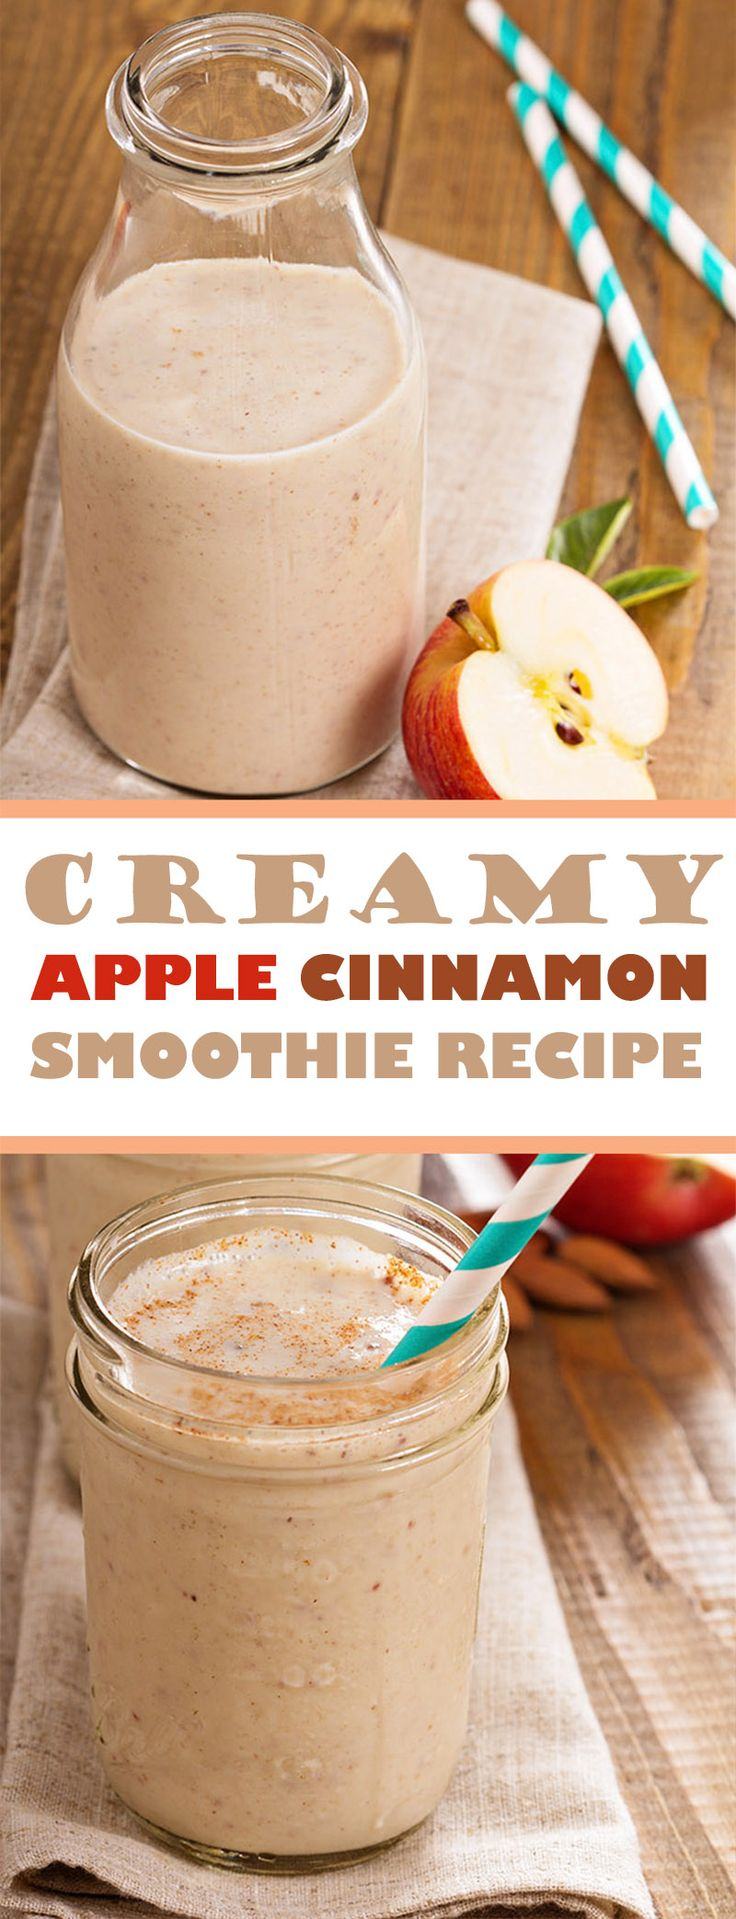 CREAMY APPLE CINNAMON SMOOTHIE RECIPE | Food Blog | Cooking Recipes | Recipe | Smoothies | Food | Drinks